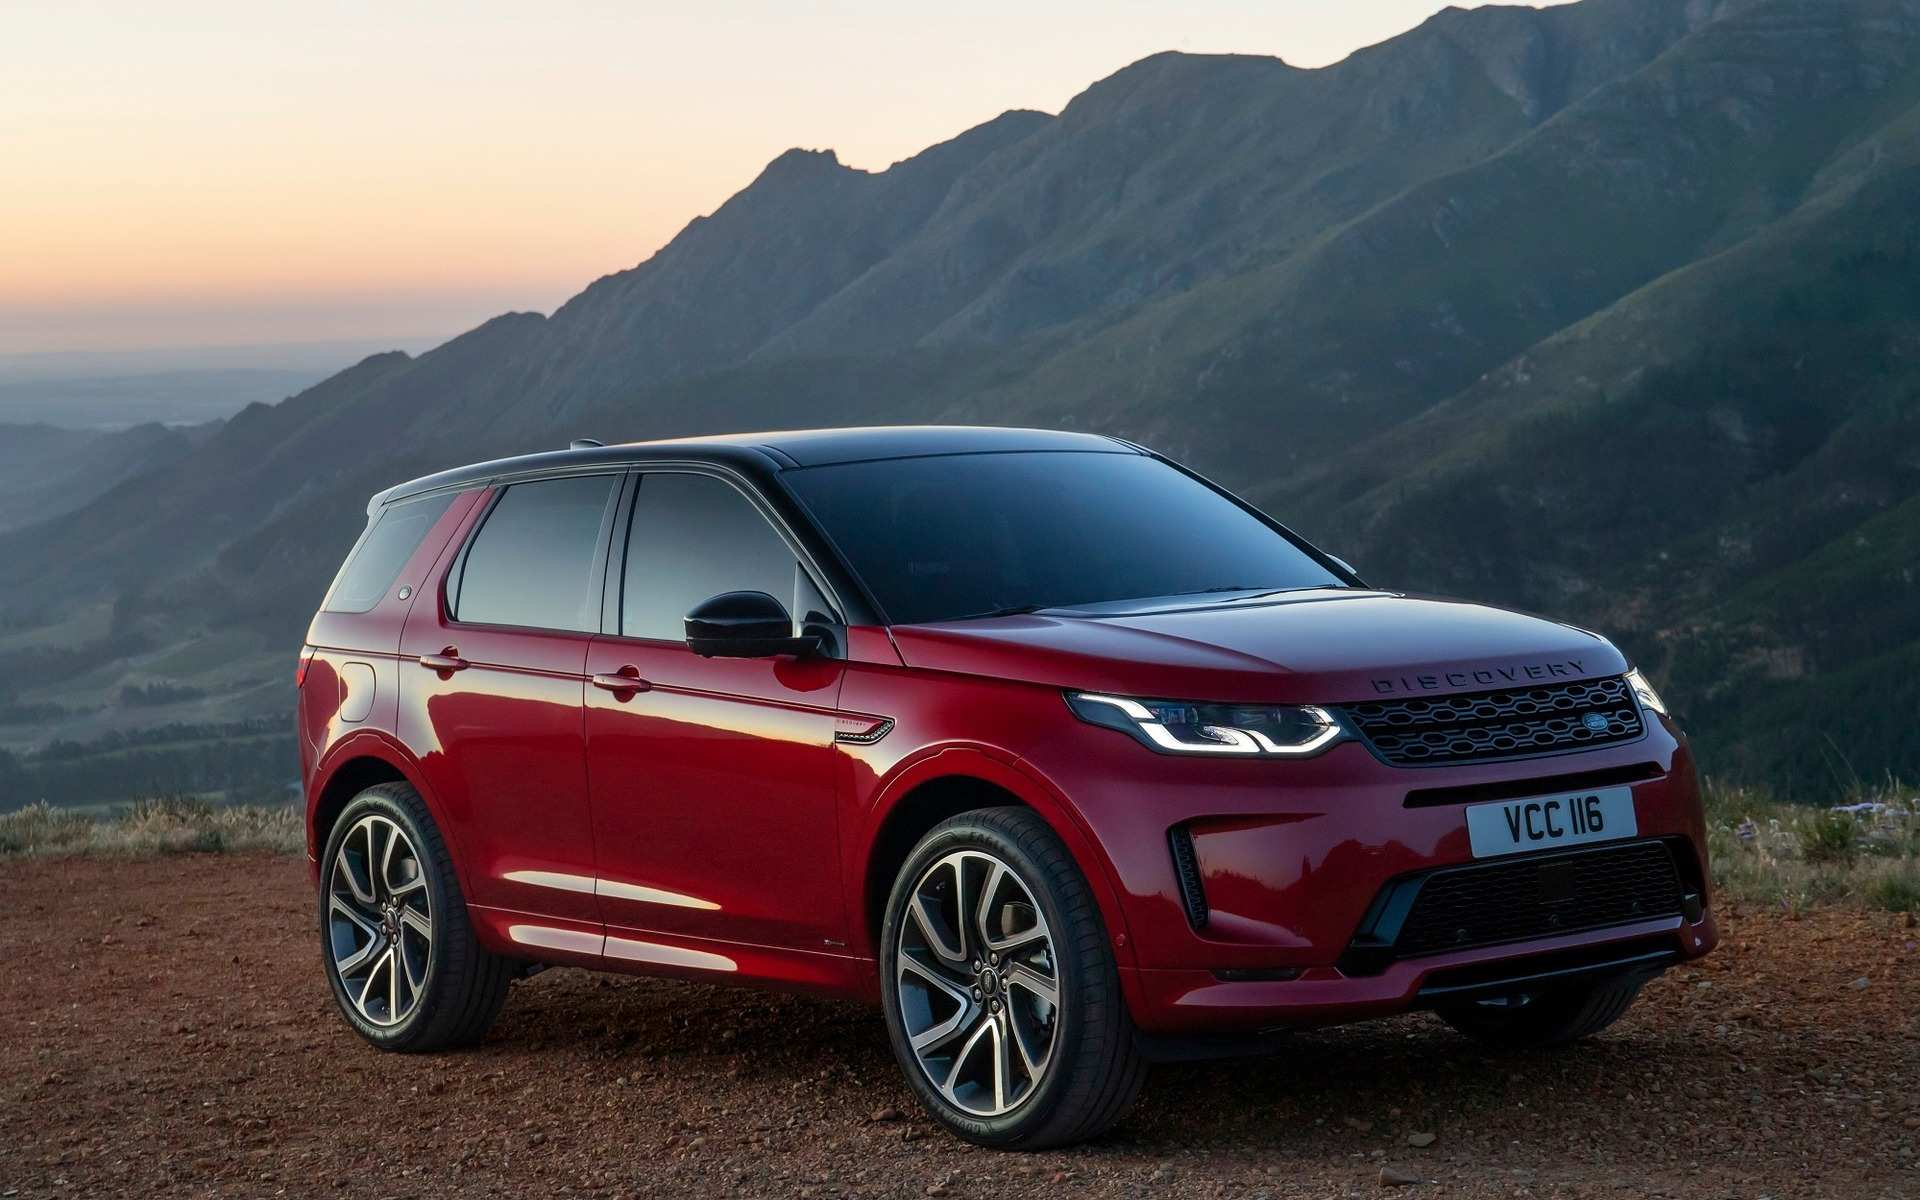 55 All New 2020 Land Rover Discovery Sport Review And Release Date